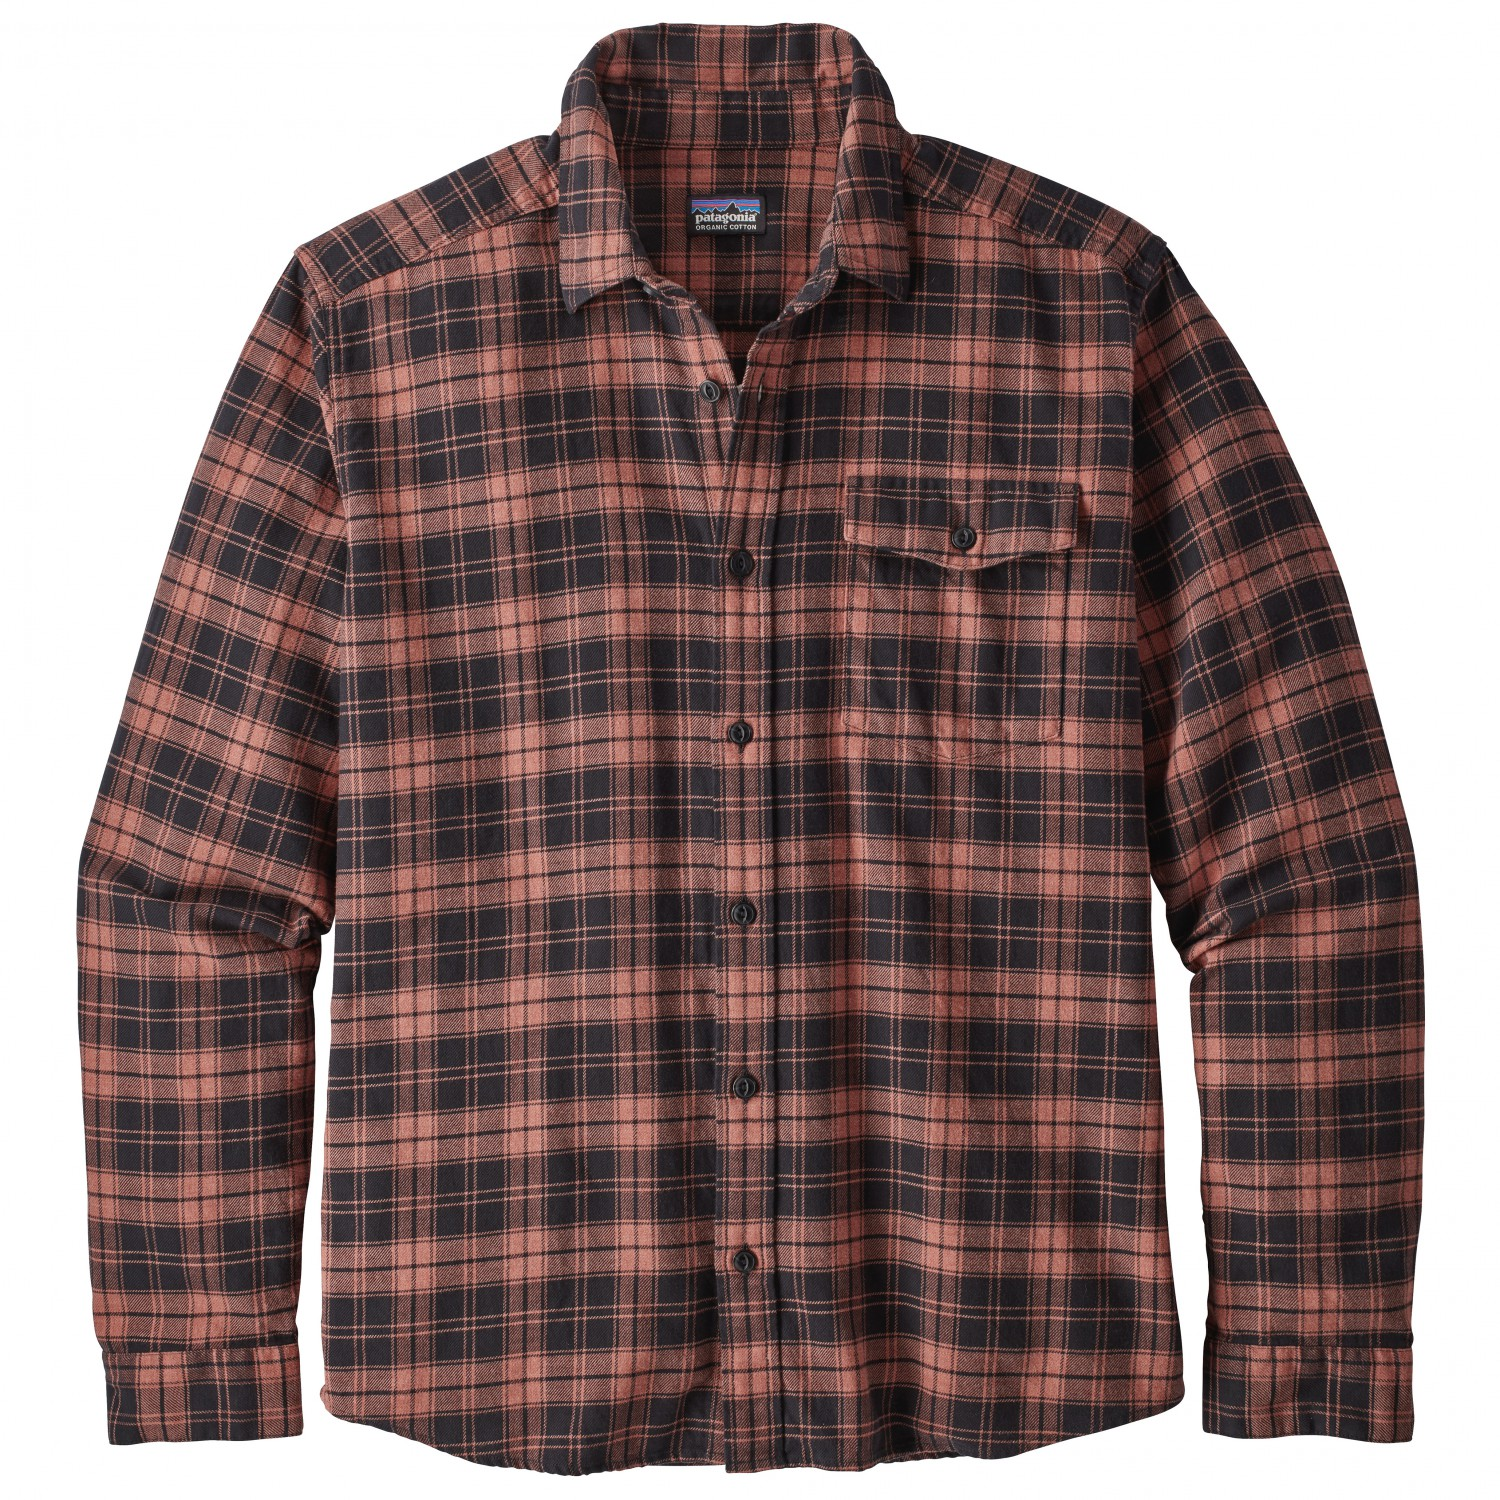 6697e4427c0 Patagonia L S LW Fjord Flannel Shirt - Chemise Homme